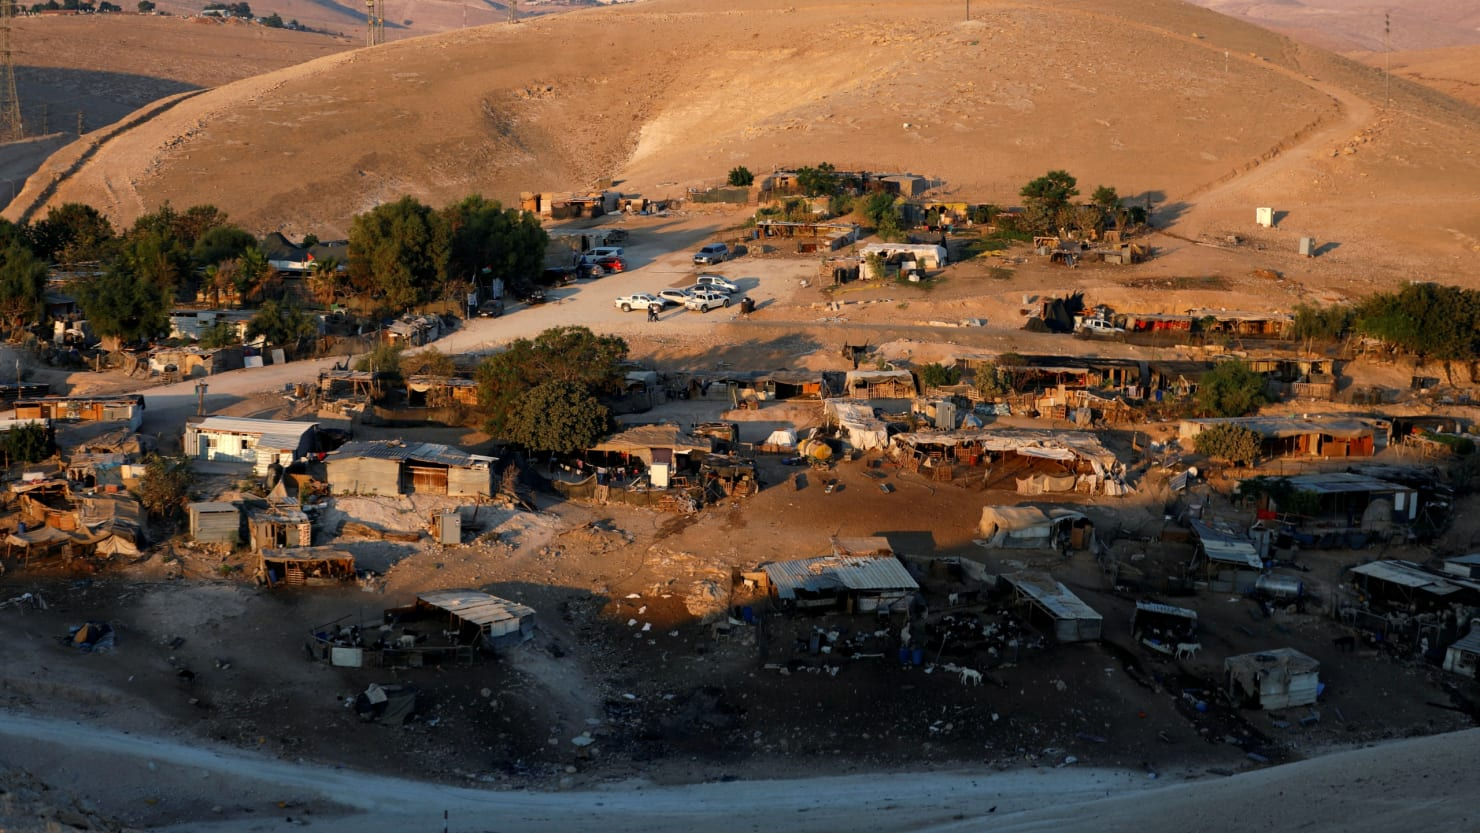 Israel Gives West Bank Village Residents 7 Days to Get Out